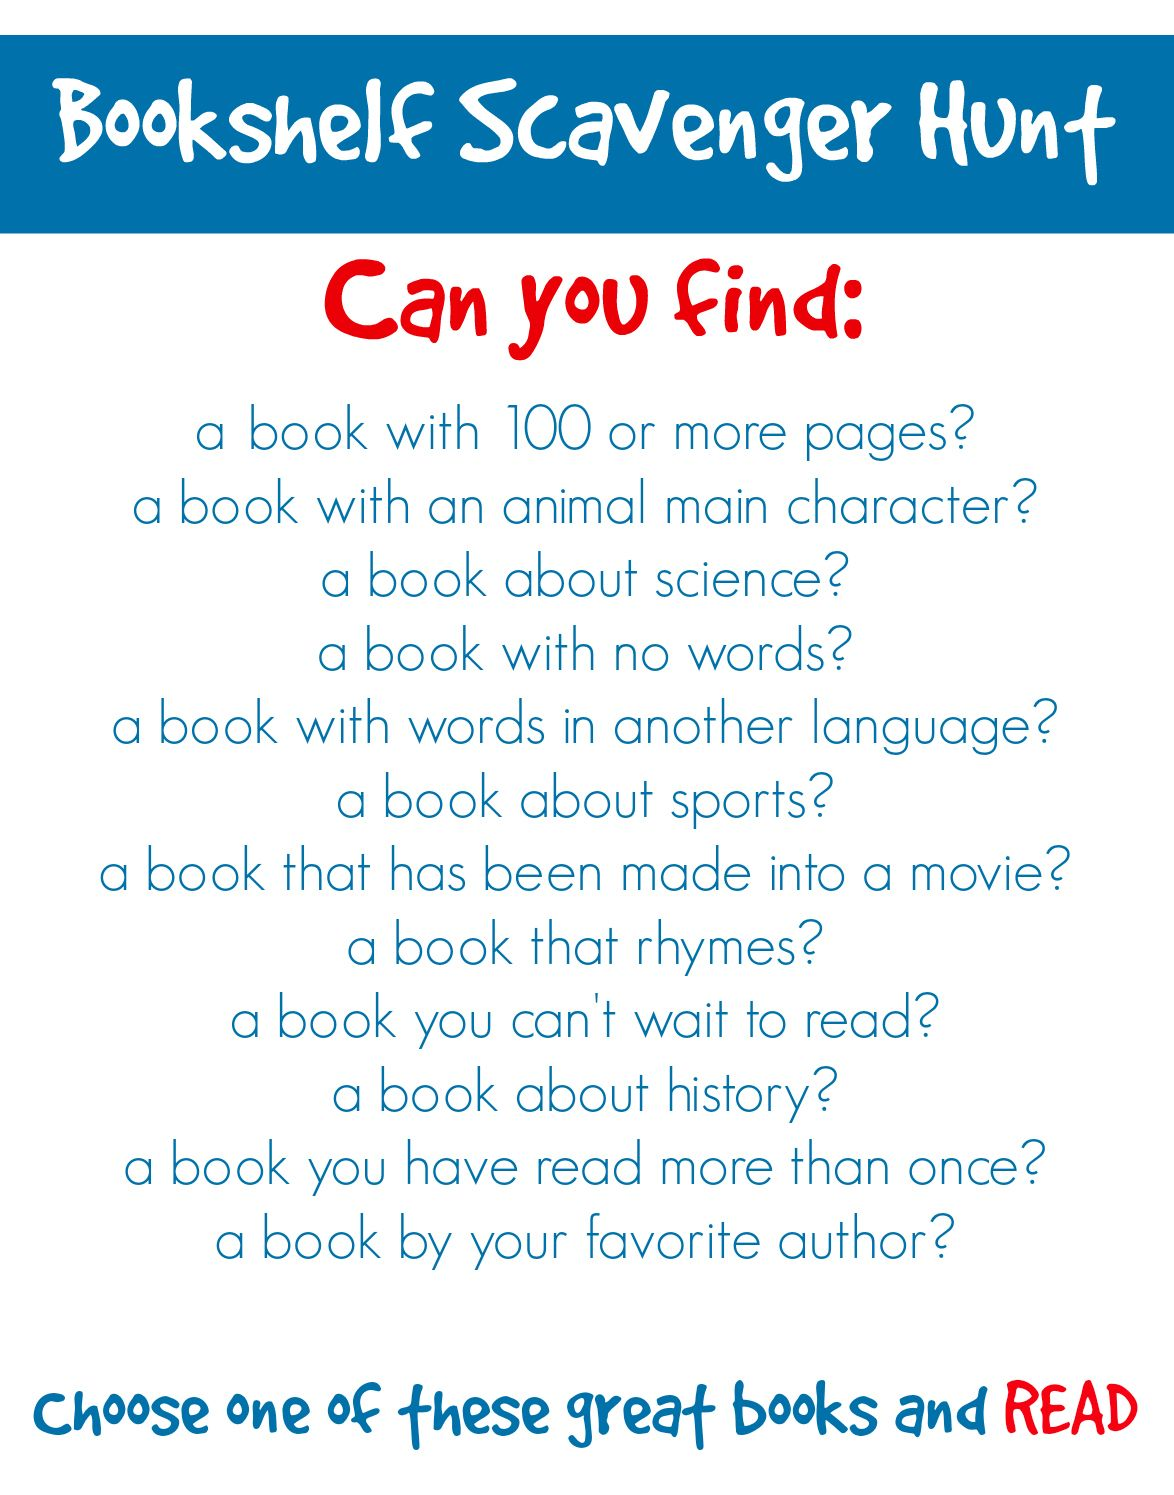 Challenge Kids To A Bookshelf Scavenger Hunt